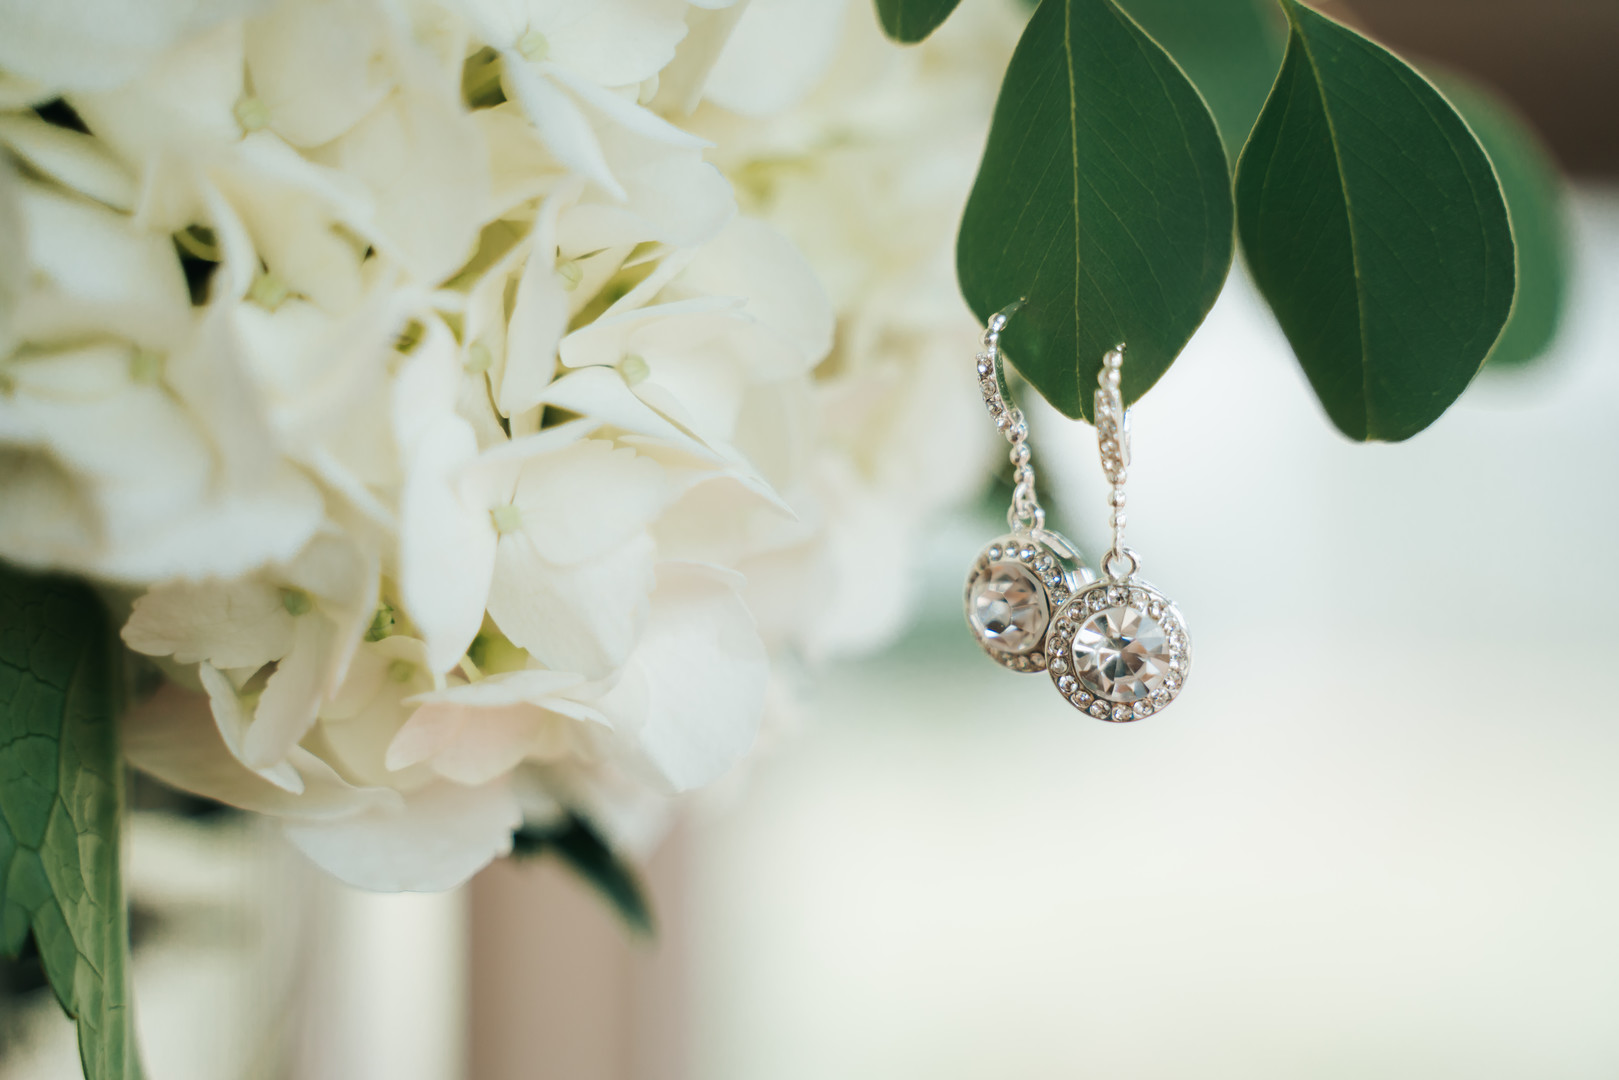 Wedding earrings: Beautiful Illinois wedding at Riverside Receptions captured by Windy City Production. See more wedding ideas at CHItheeWED.com!